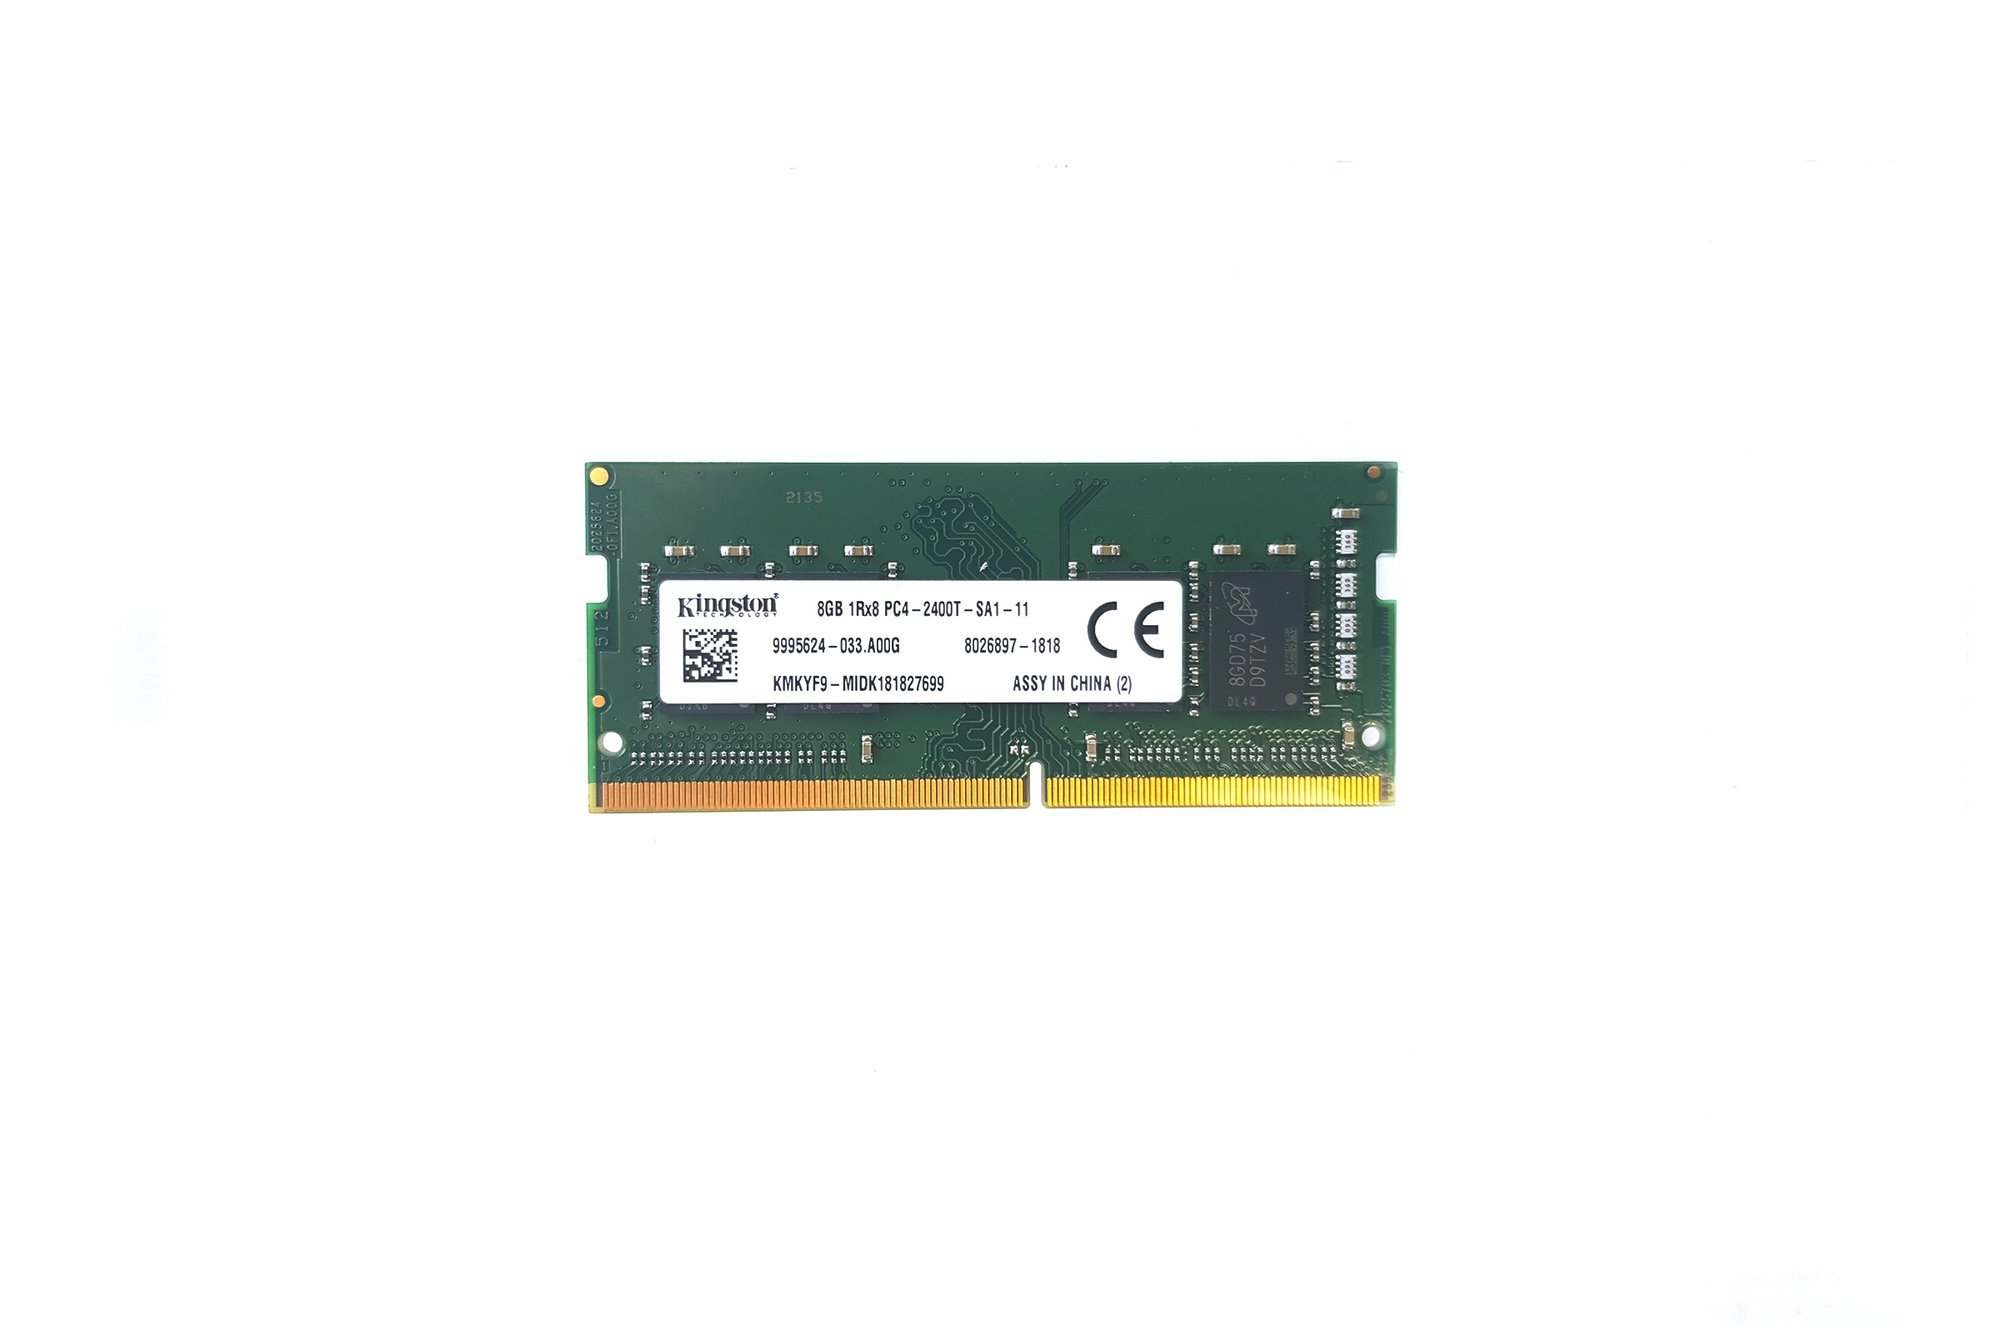 SODIMM Memory RAM Kingston 8GB DDR4 KMKYF9-MIB